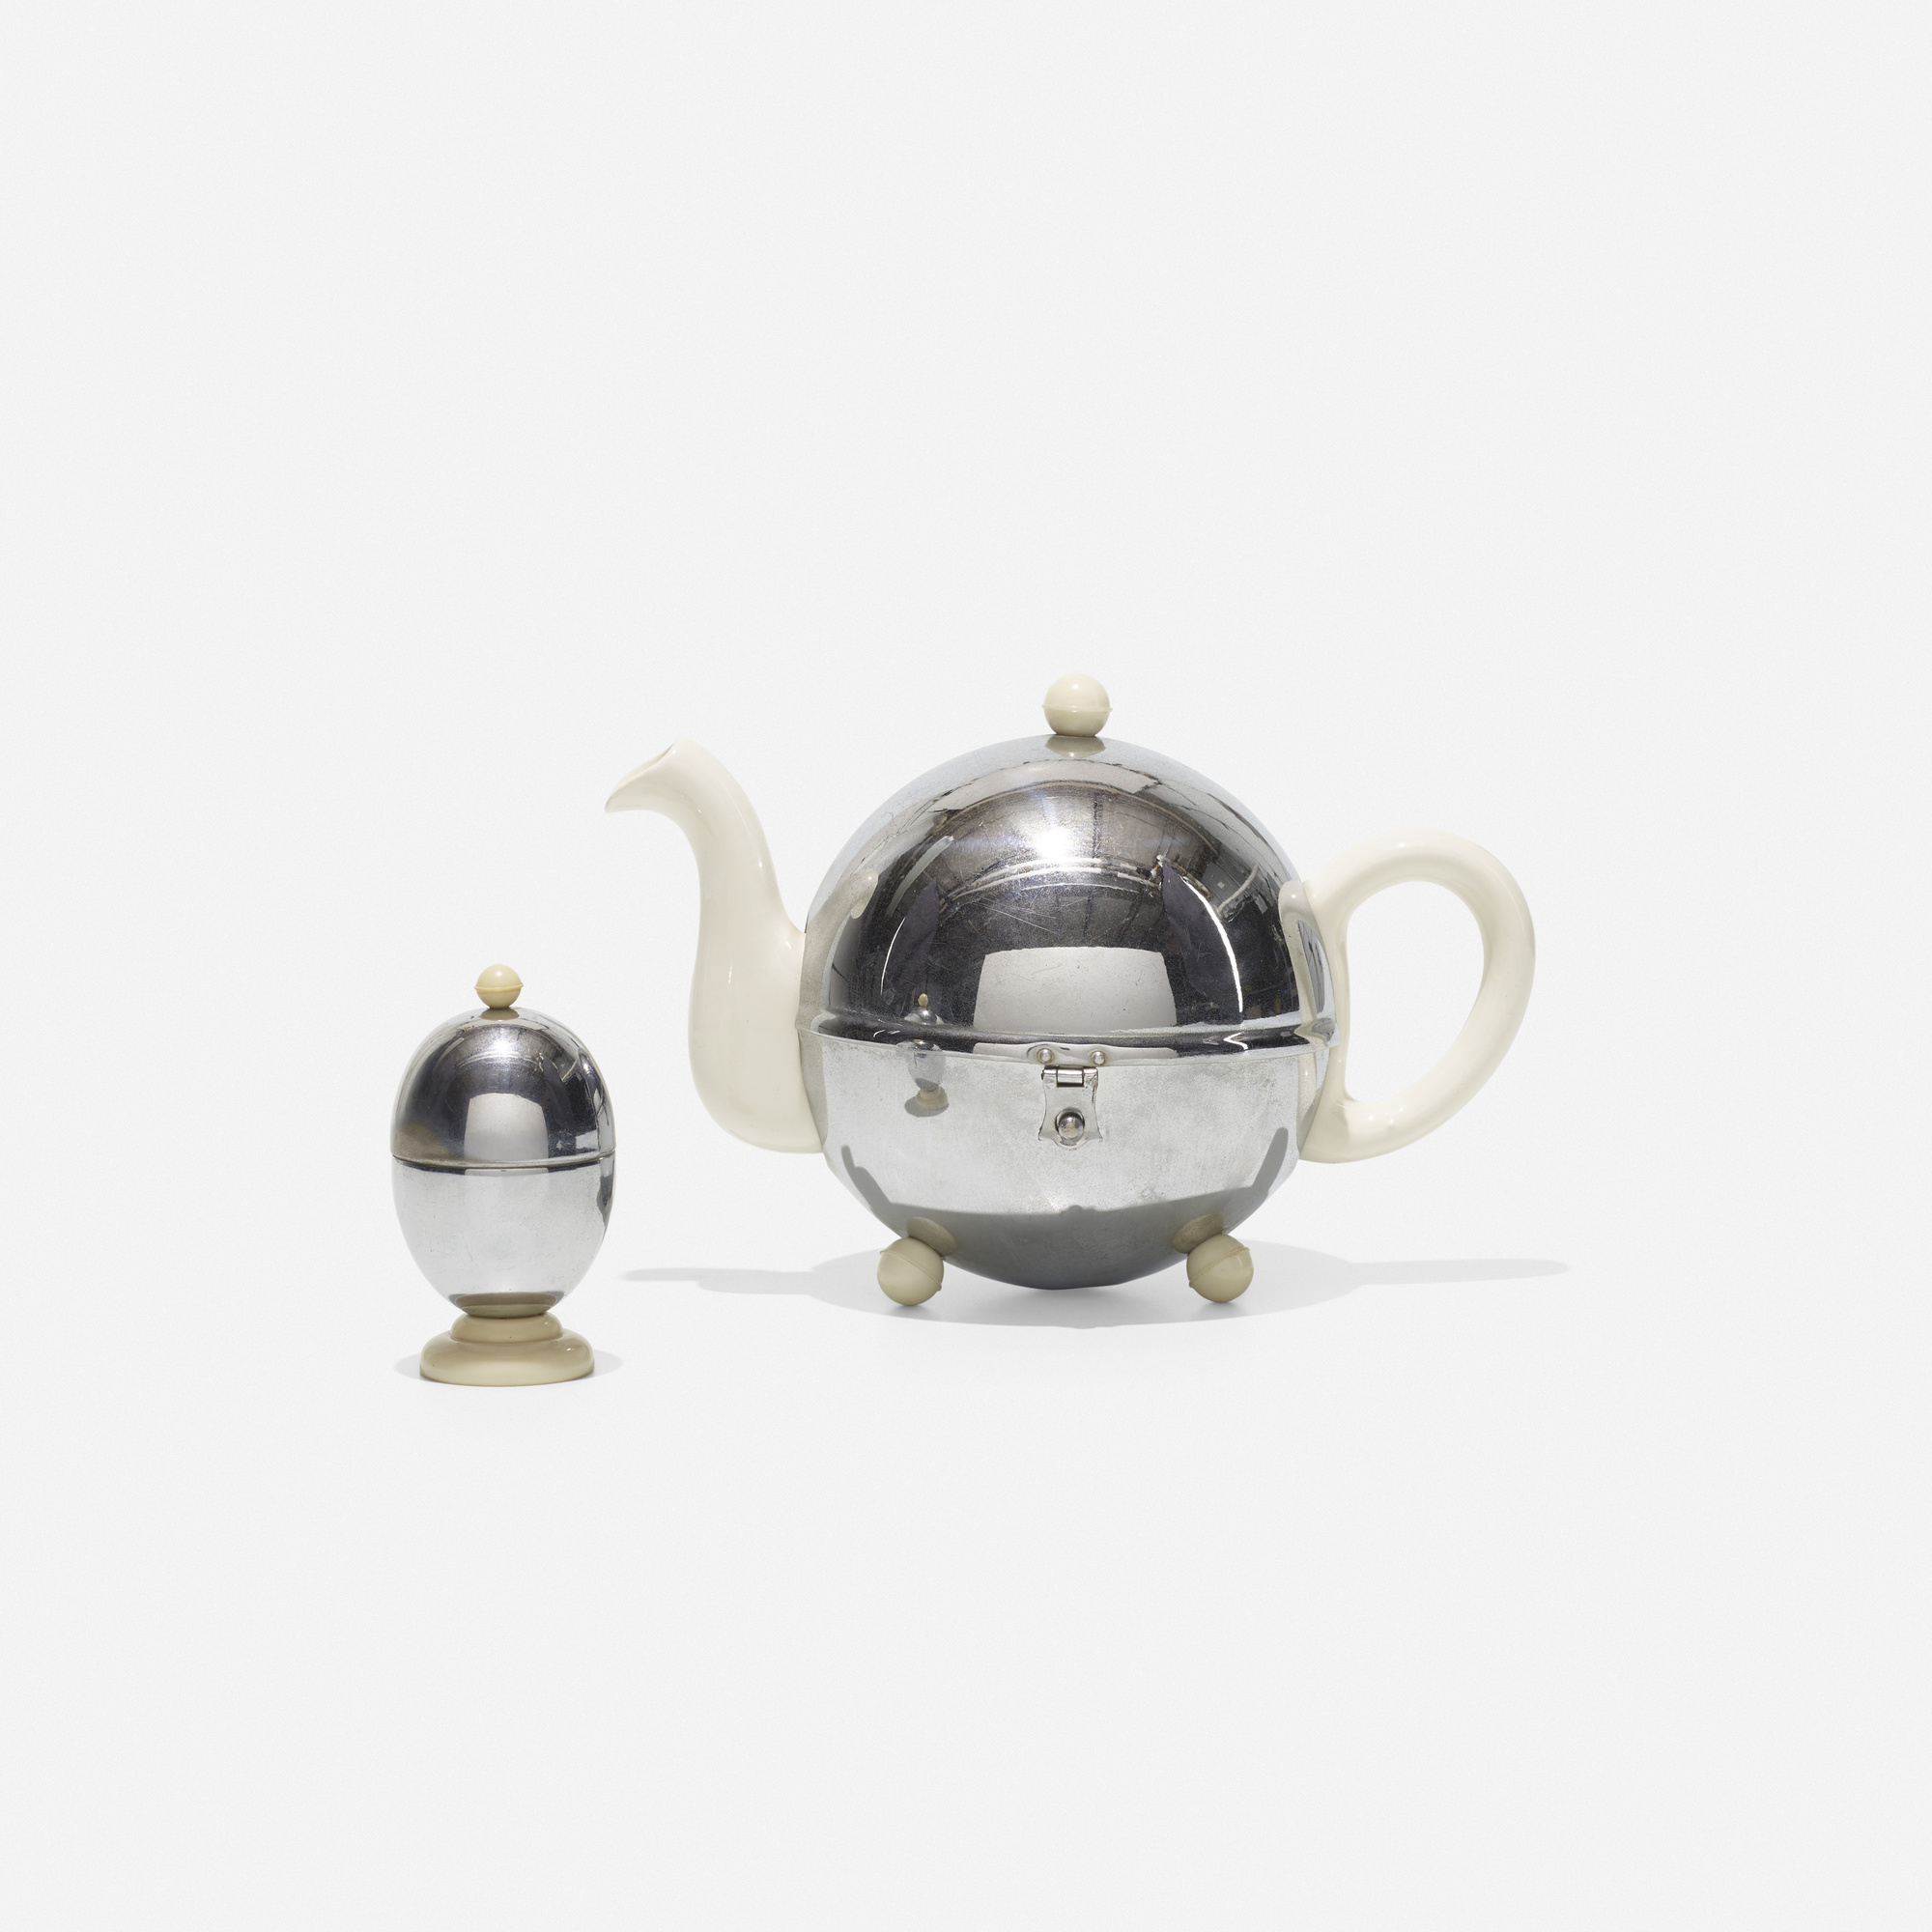 291: Ellgreave Pottery Co. Ltd. / Heatmaster teapot and egg cup (1 of 1)